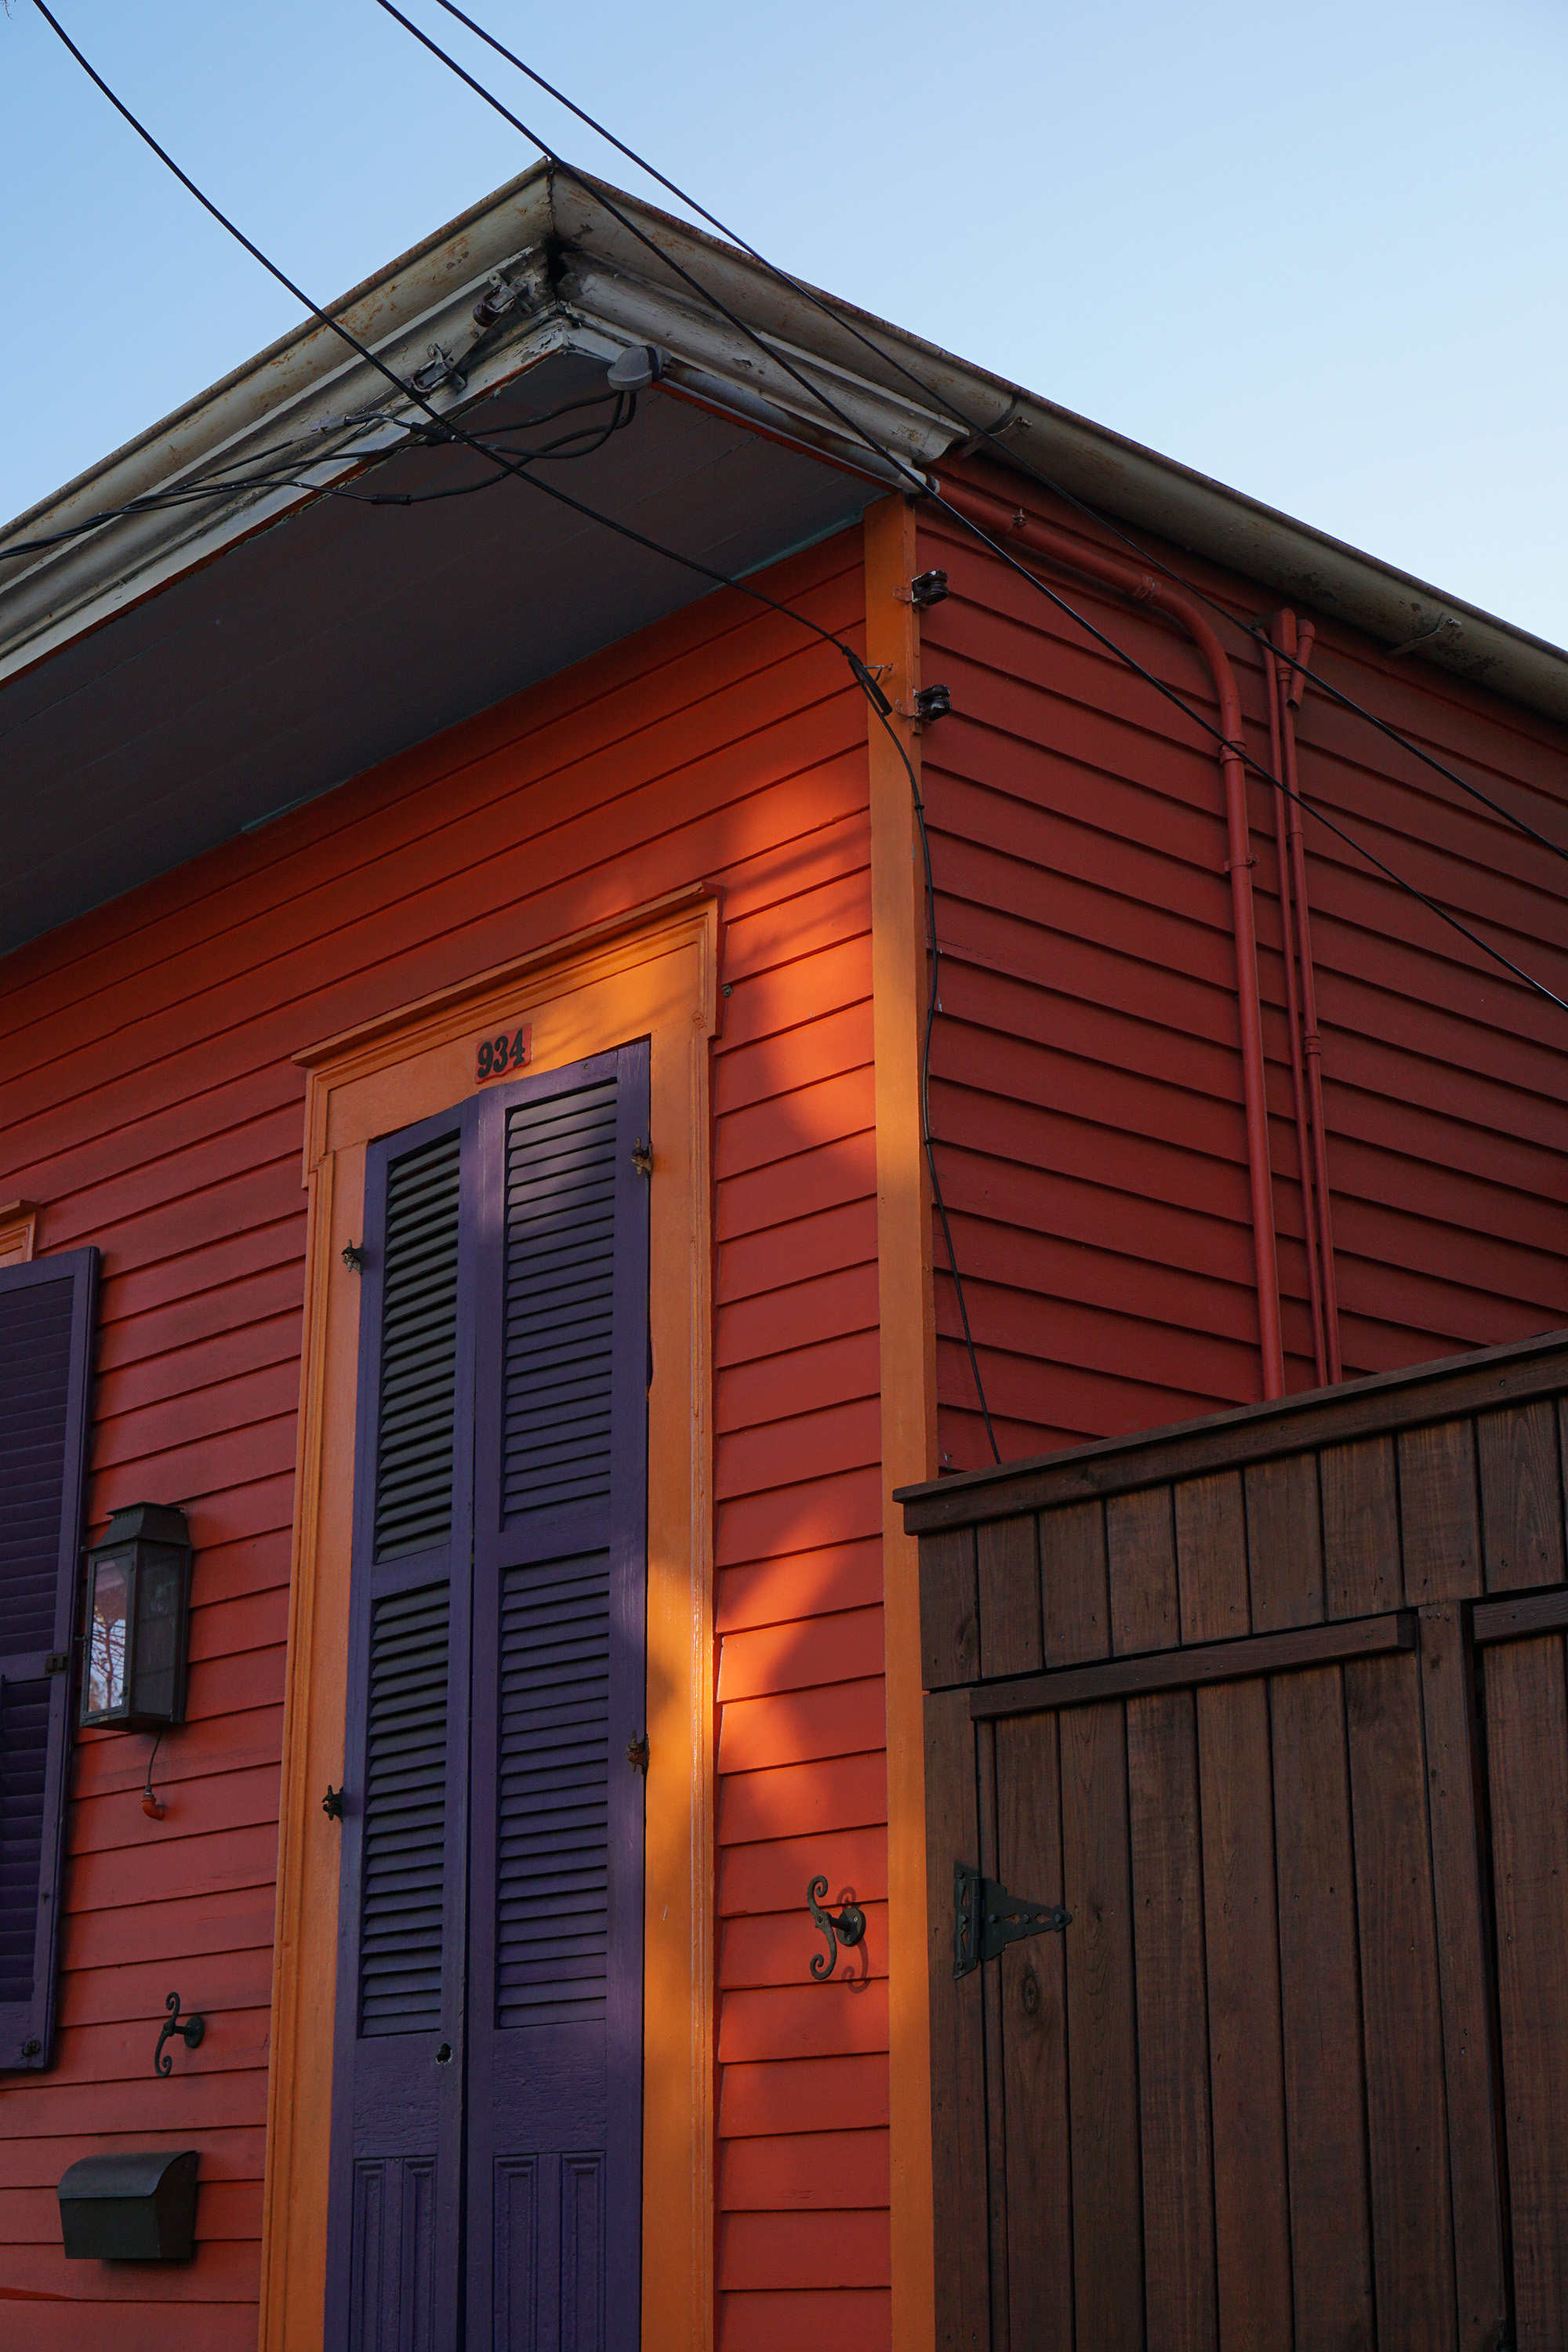 House in the Marigny, New Orleans / Darker than Green